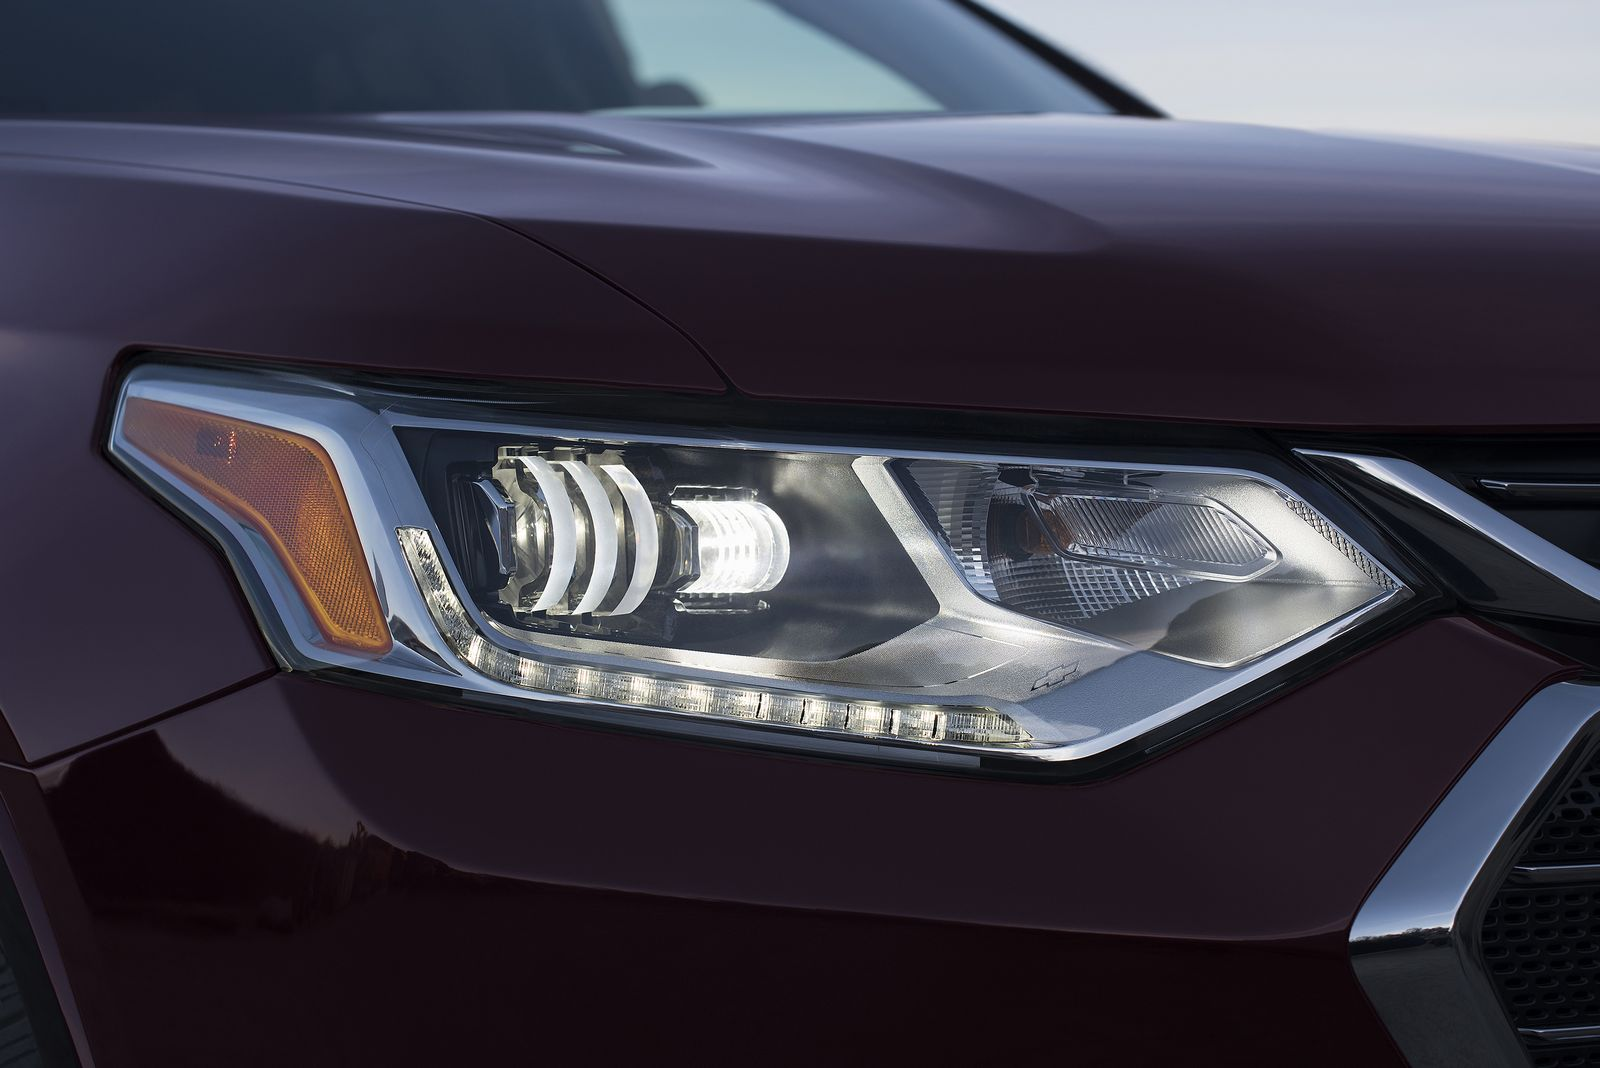 The 2018 Traverse has a new look inspired by Chevrolet's full-size SUVs, with purposeful proportions complemented by premium cues such as chrome accents, LED signature lighting and available D-Optic LED headlamps.